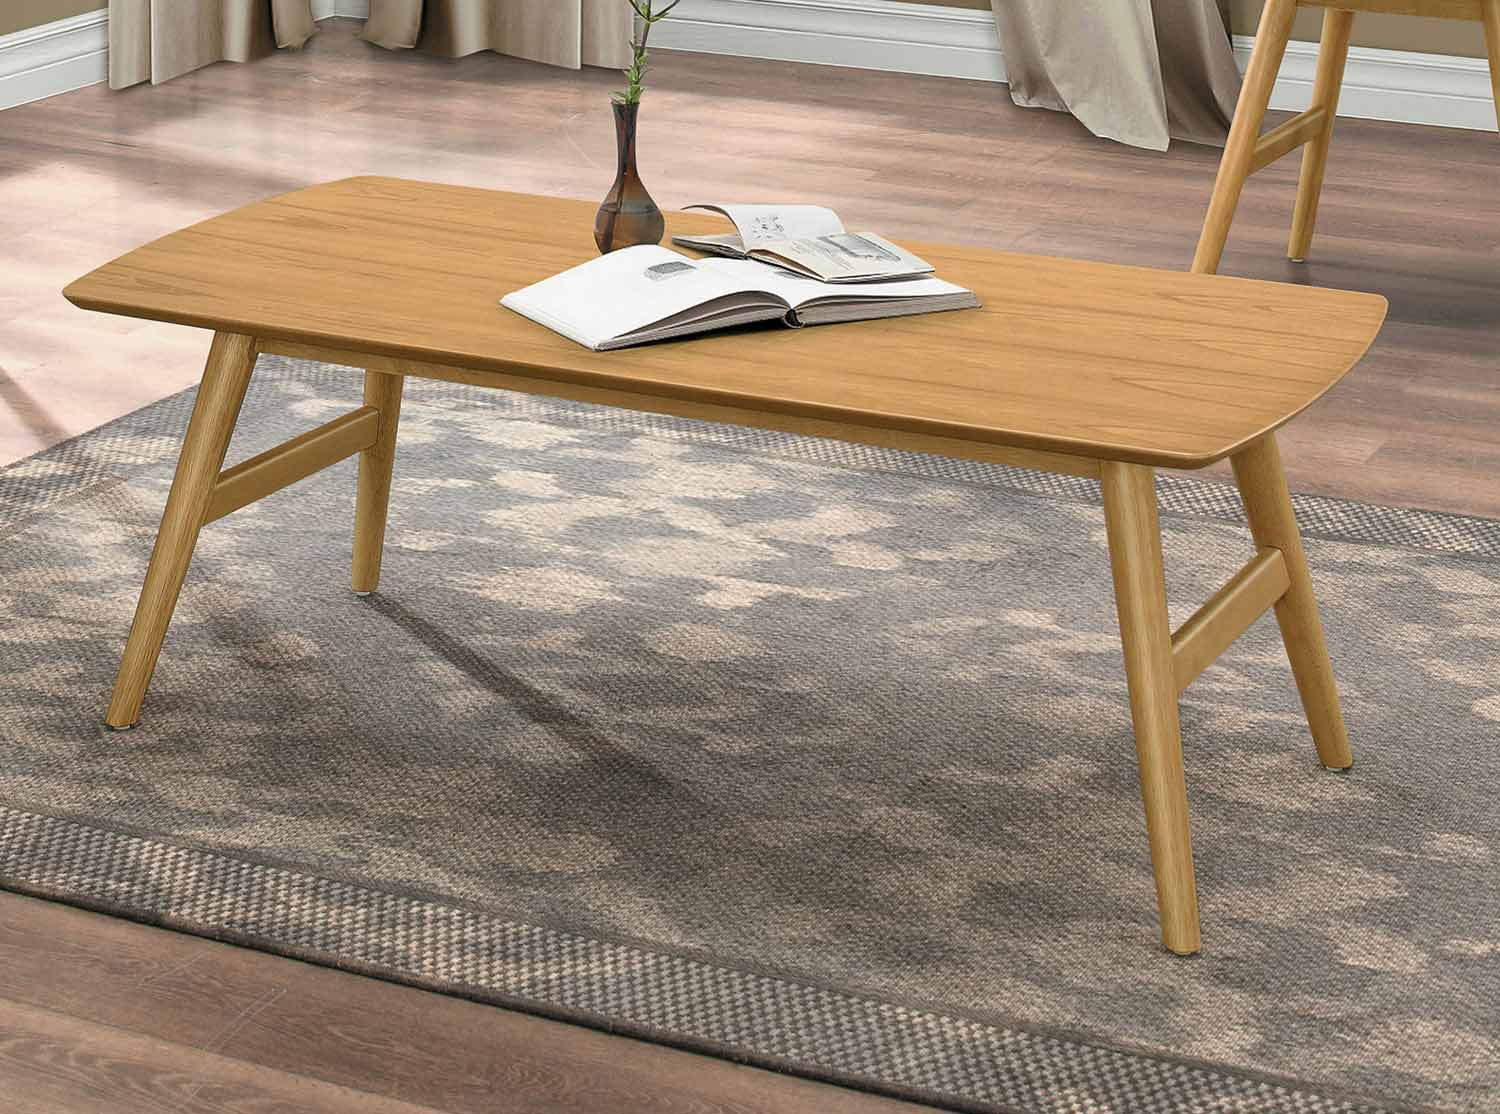 Homelegance Anika Cocktail/Coffee Table - Light Ash